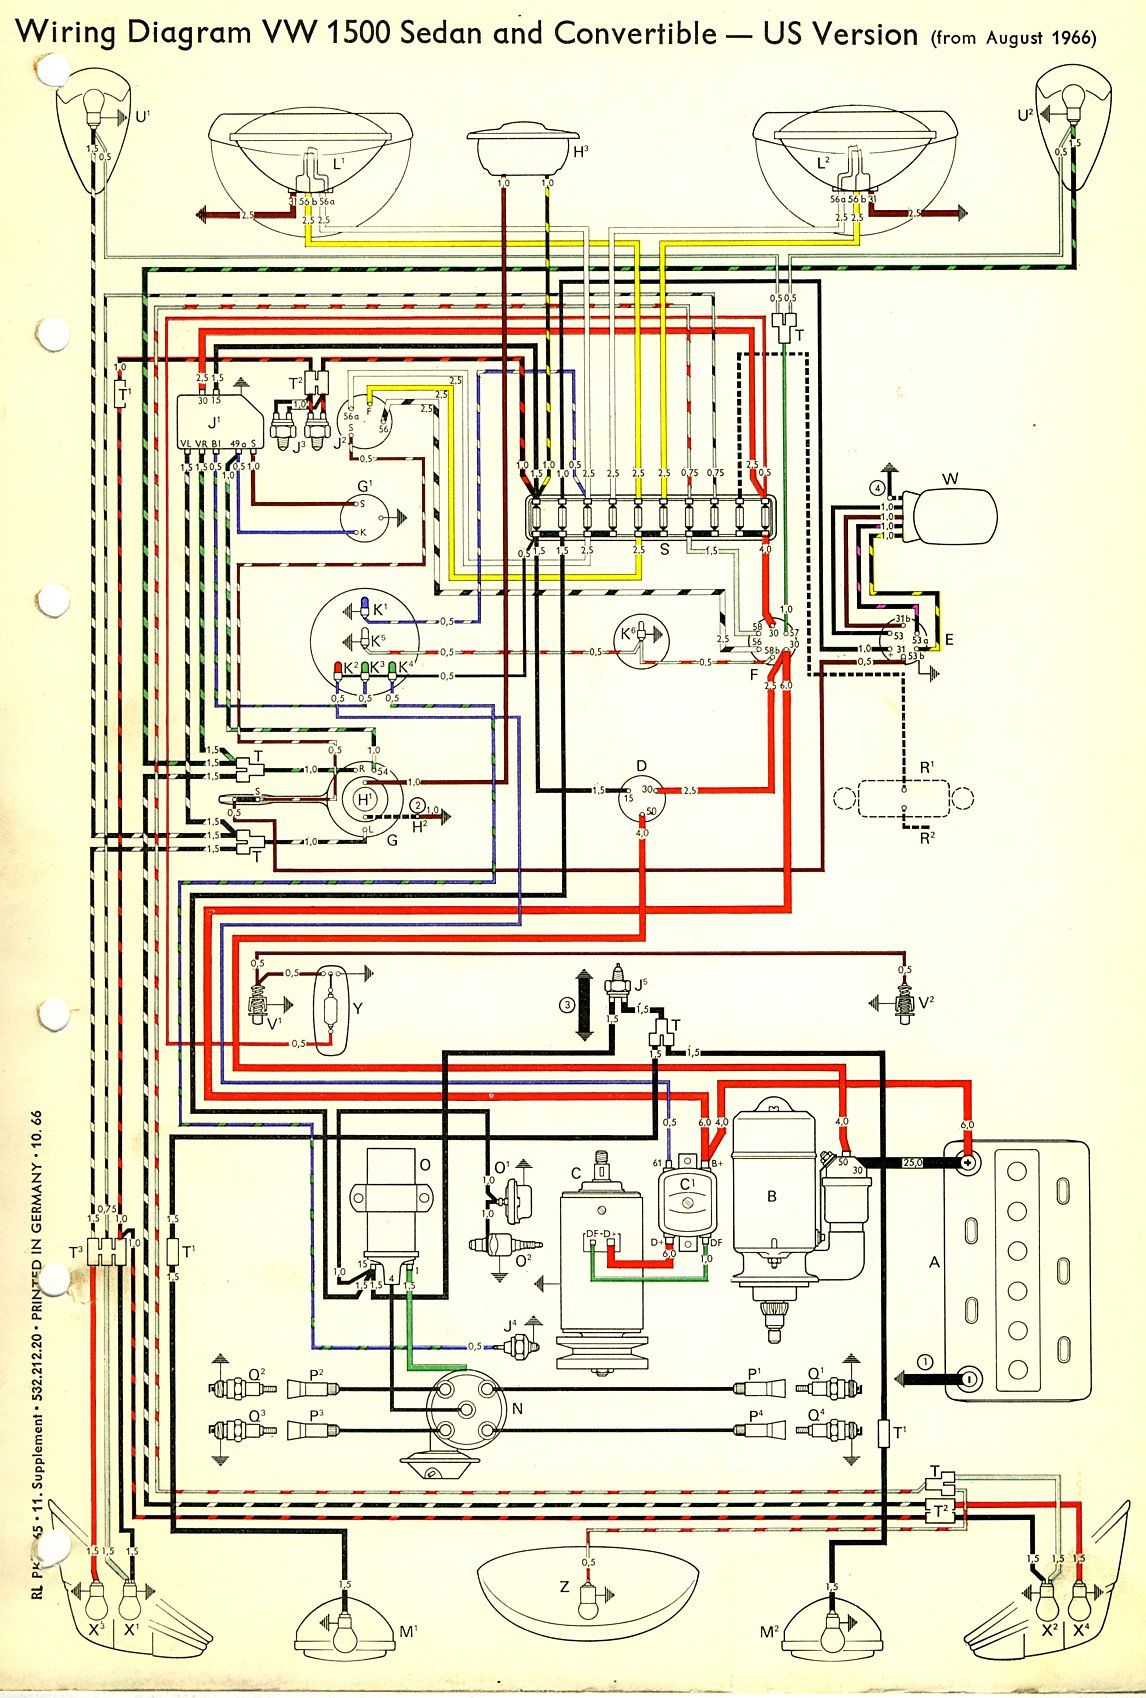 1adf990c0efb617c789fdd21338448b0 1967 beetle wiring diagram (usa) thegoldenbug com best 1967 vw 1971 vw bus wiring diagram at webbmarketing.co